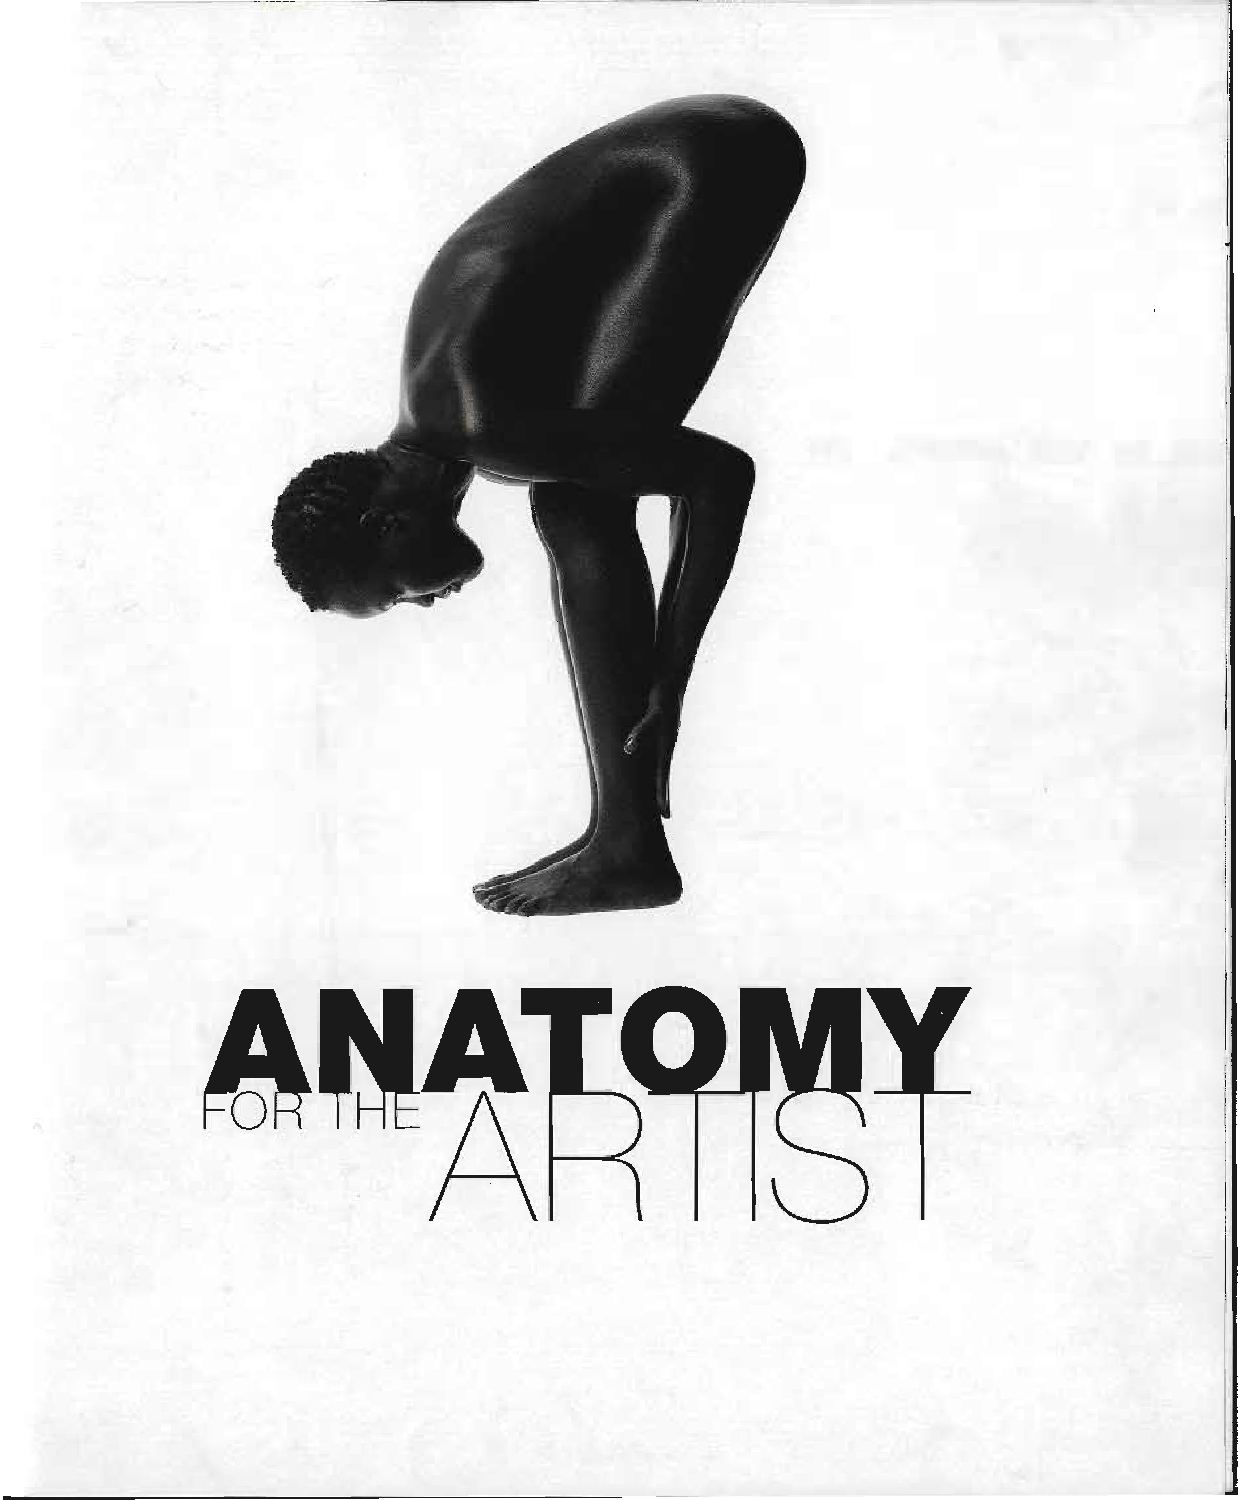 Anatomy for the Artist - CALAMEO Downloader